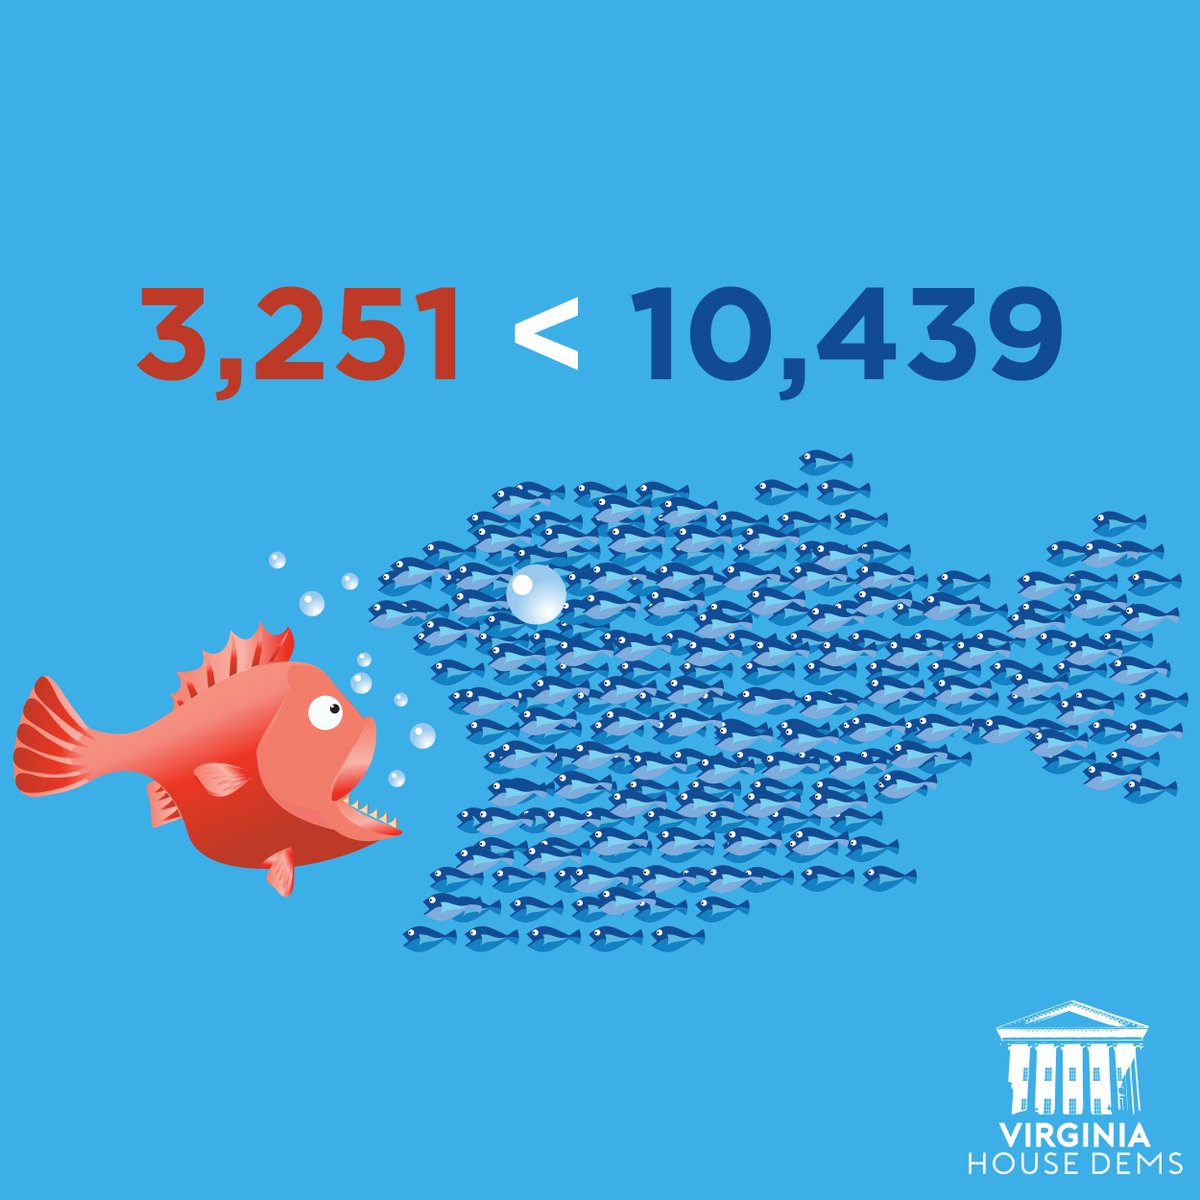 The #BlueWave keeps rising in VA! In the 1st quarter campaign finance reports, we significantly out-raised Republicans.  But we&#39;re even prouder that we had more than 3x the number of individual donations! Thank you all for your incredible grassroots support! #Fightfor51<br>http://pic.twitter.com/UHuCXazBA5